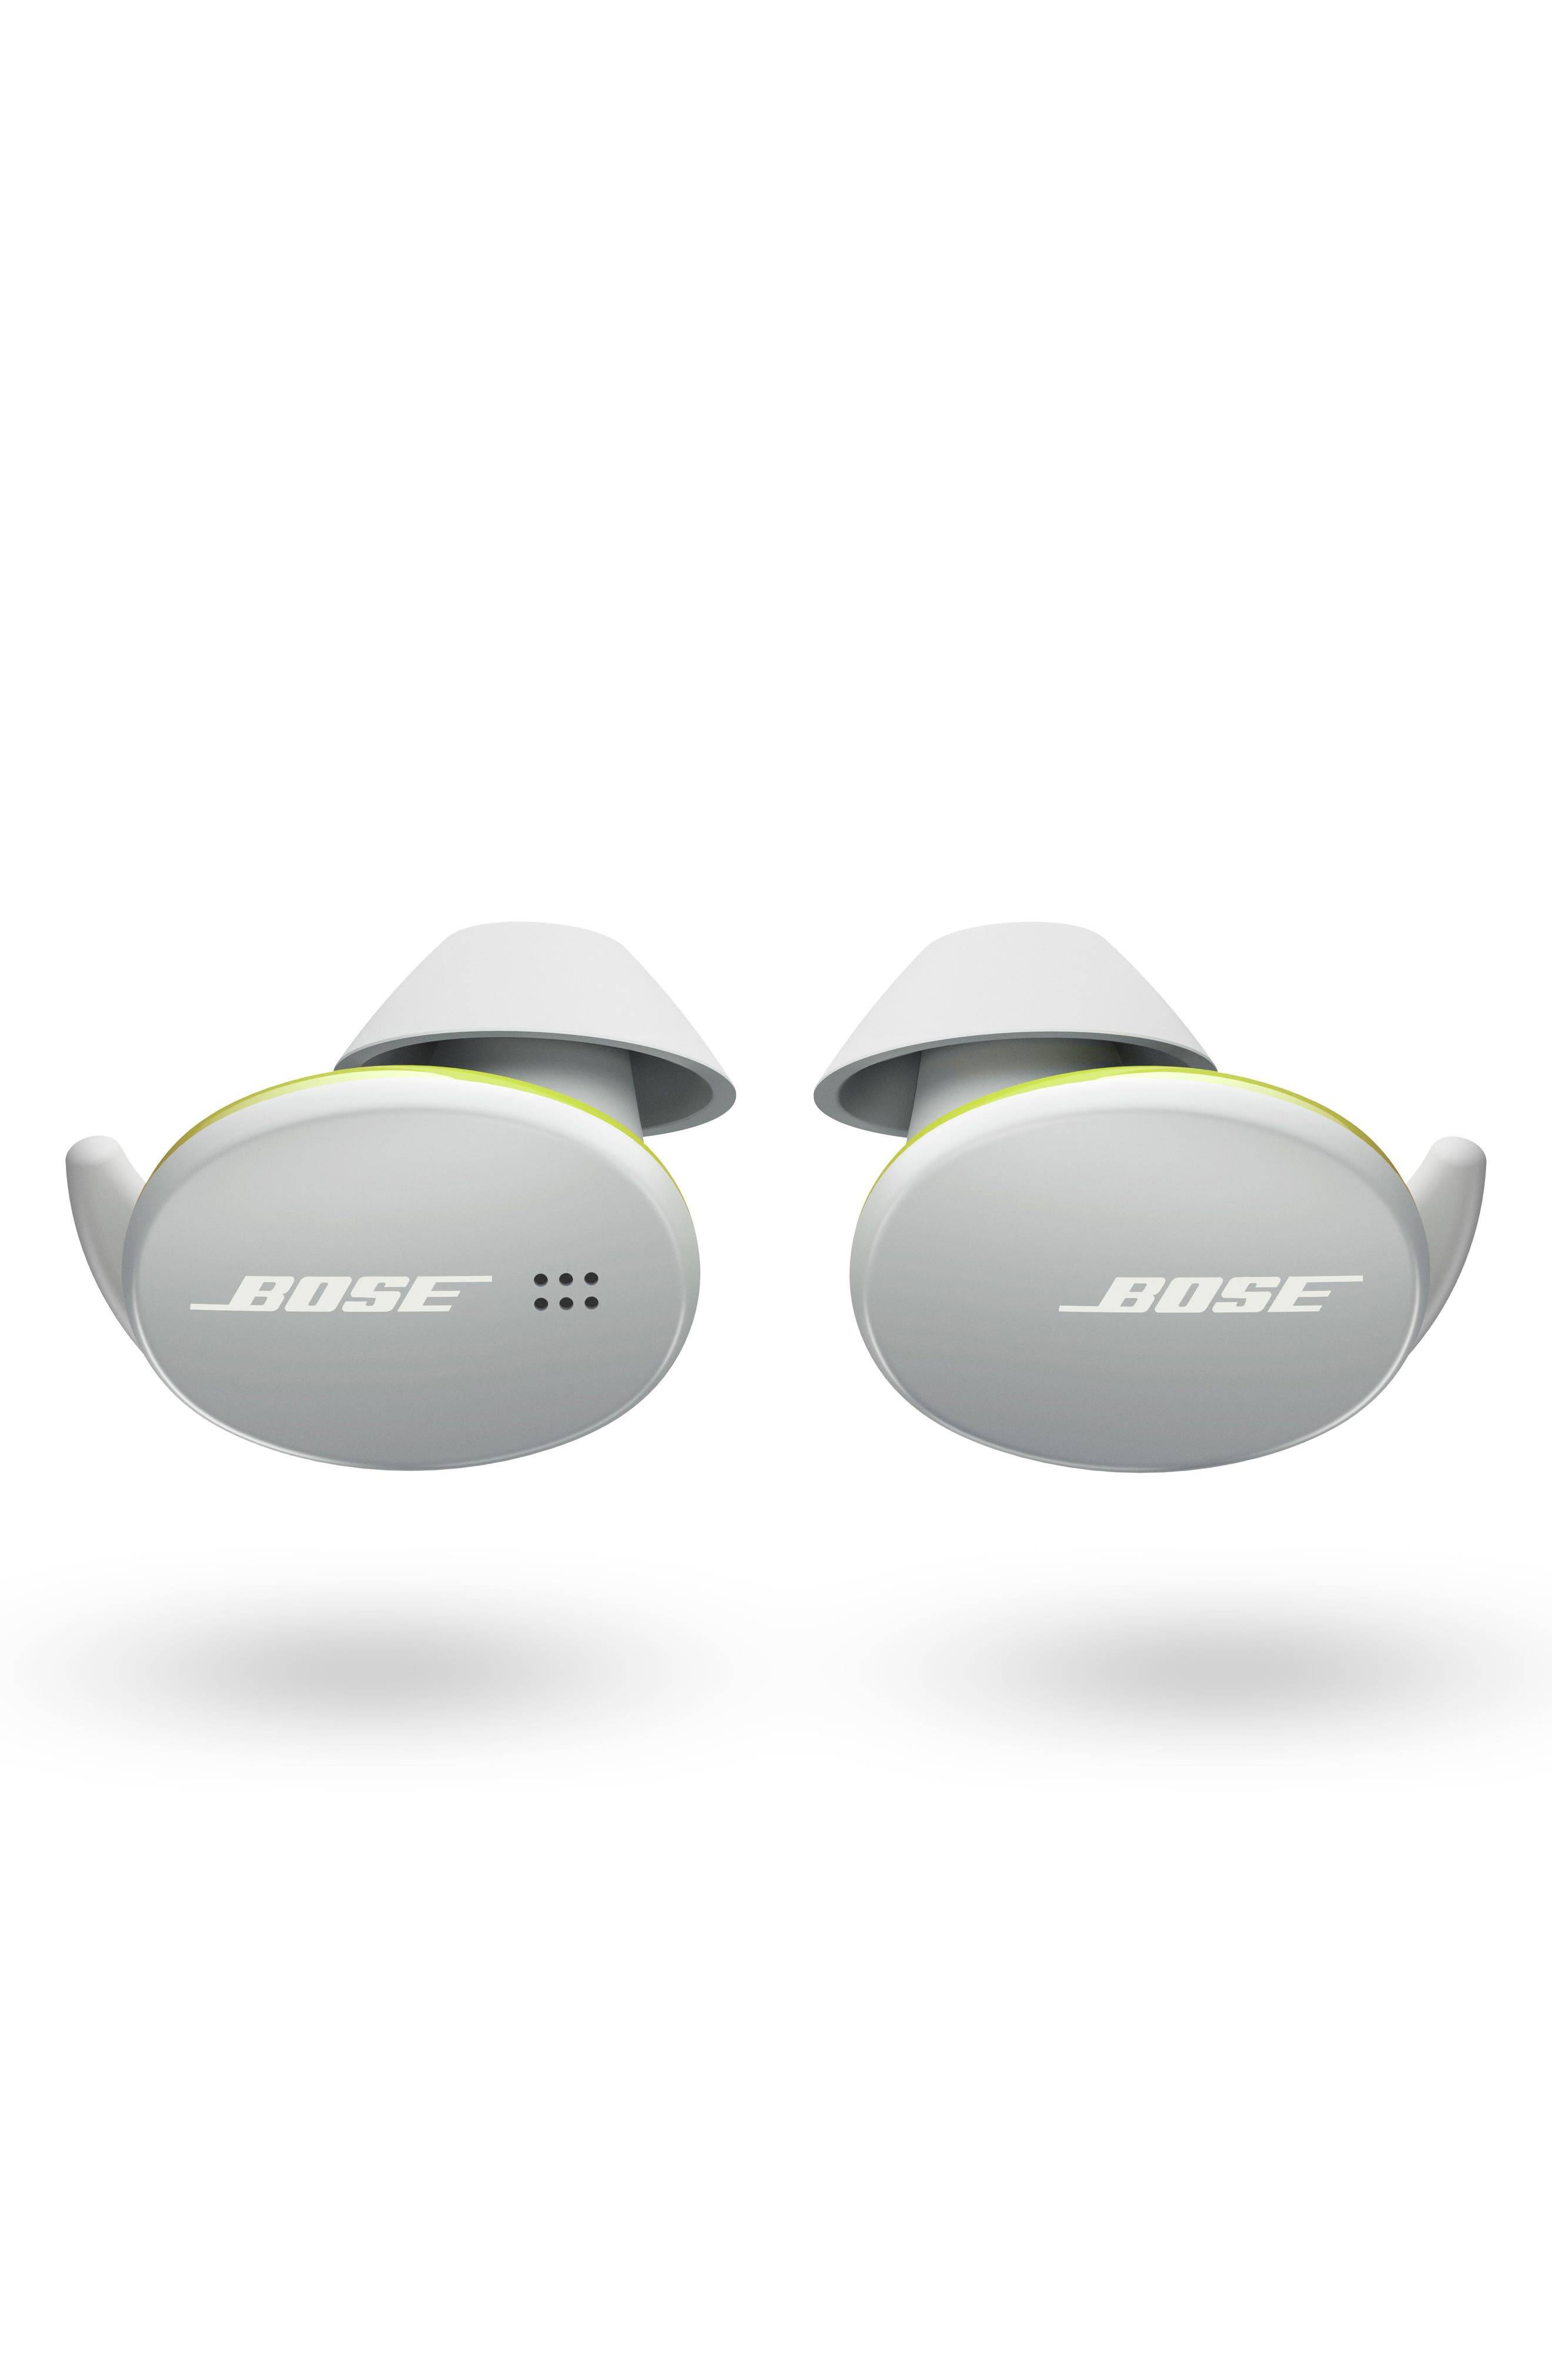 BoseR Bose Sport Earbuds, Size One Size - White